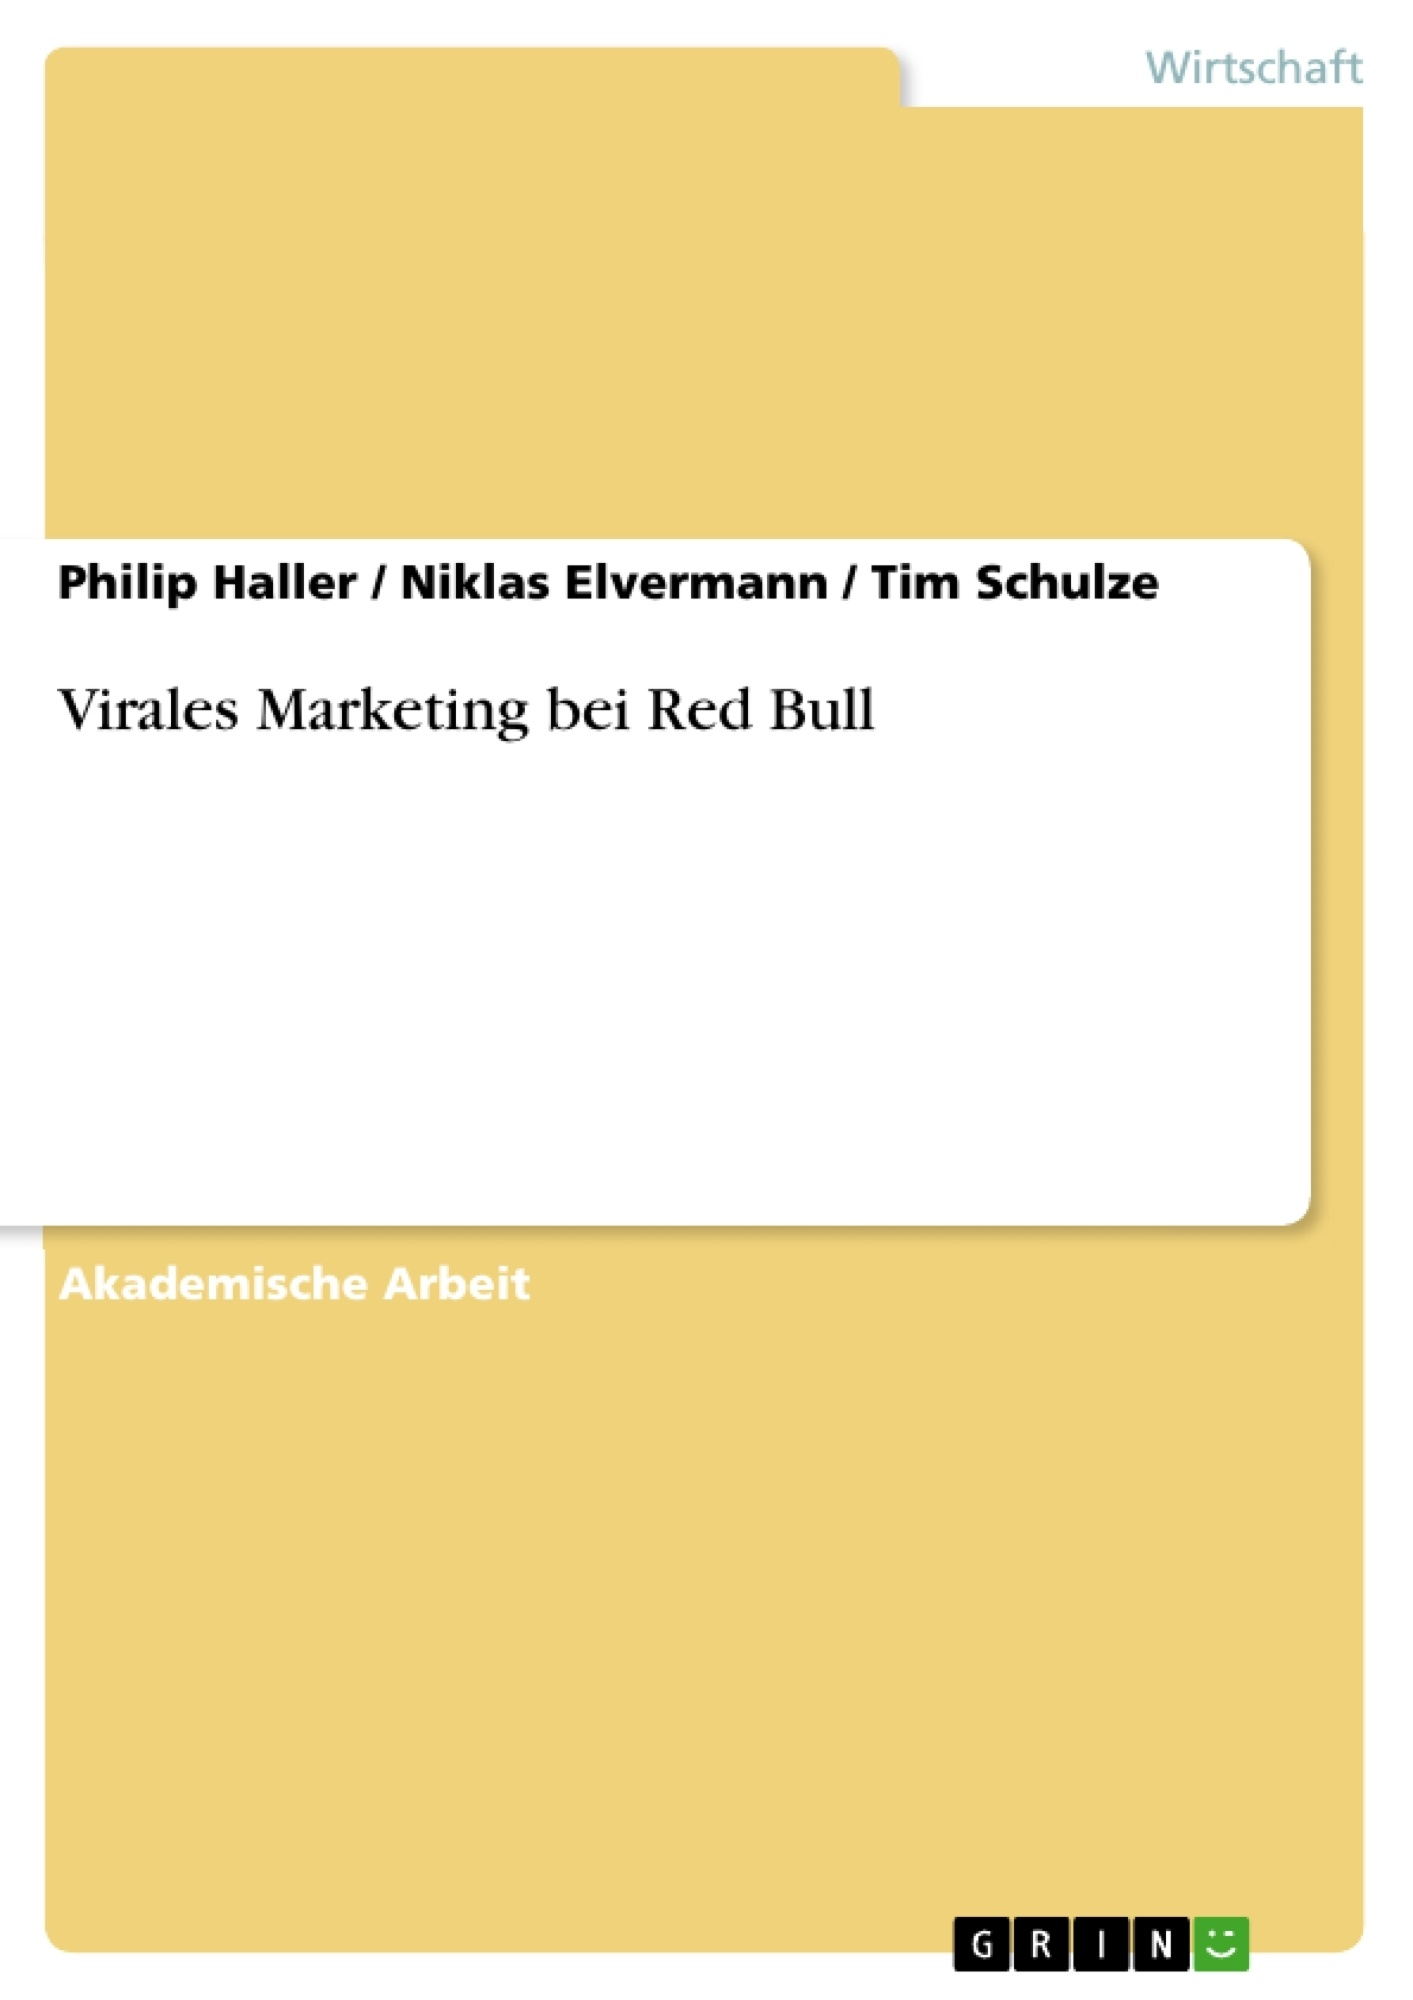 Titel: Virales Marketing bei Red Bull